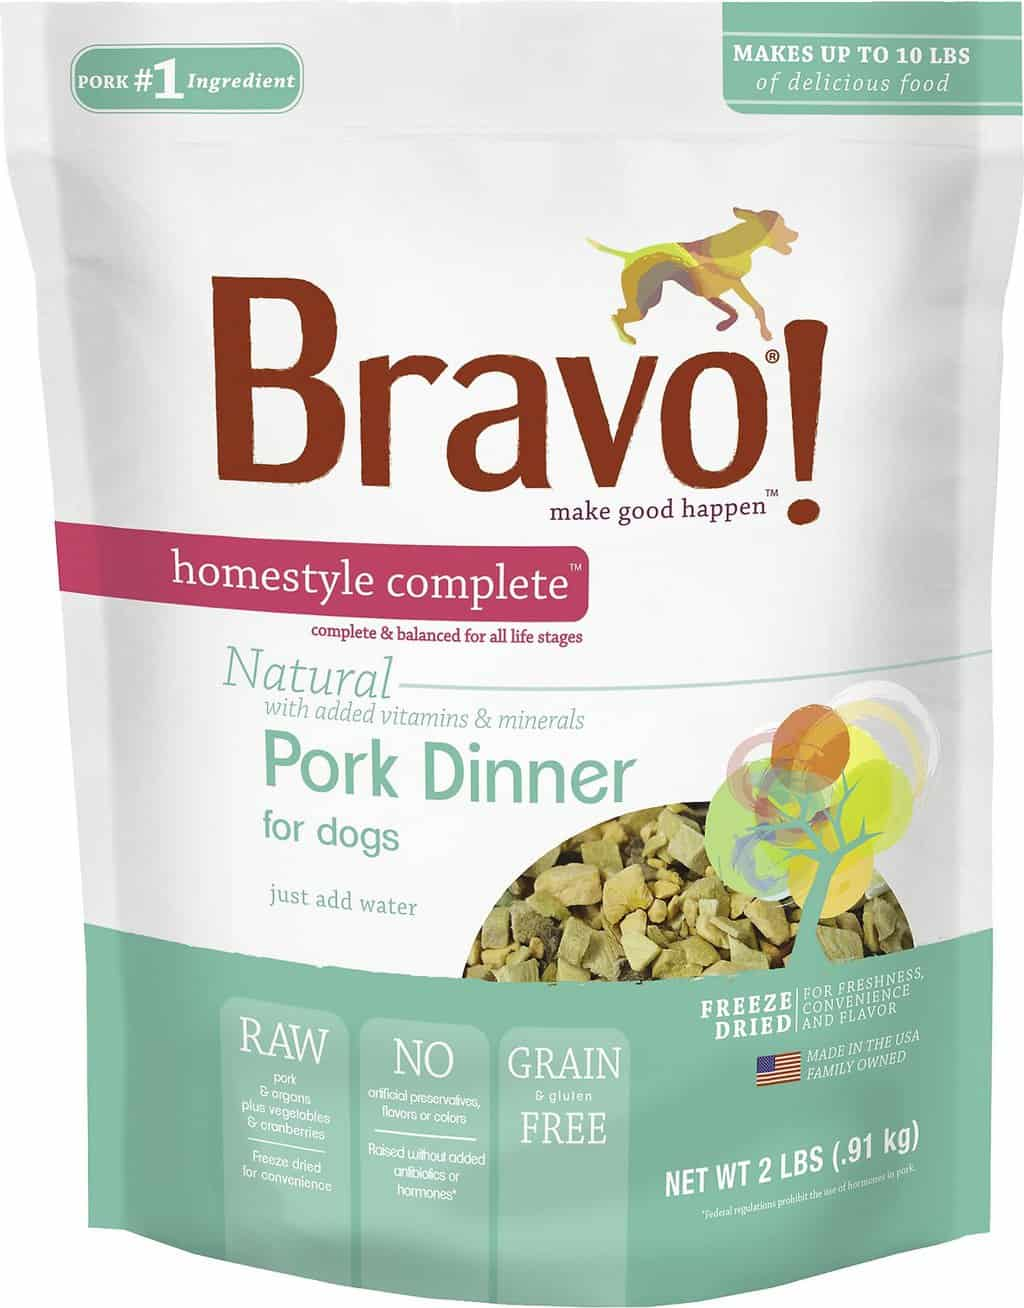 Bravo Dog Food Review 2021: Best Raw Pet Food? 13